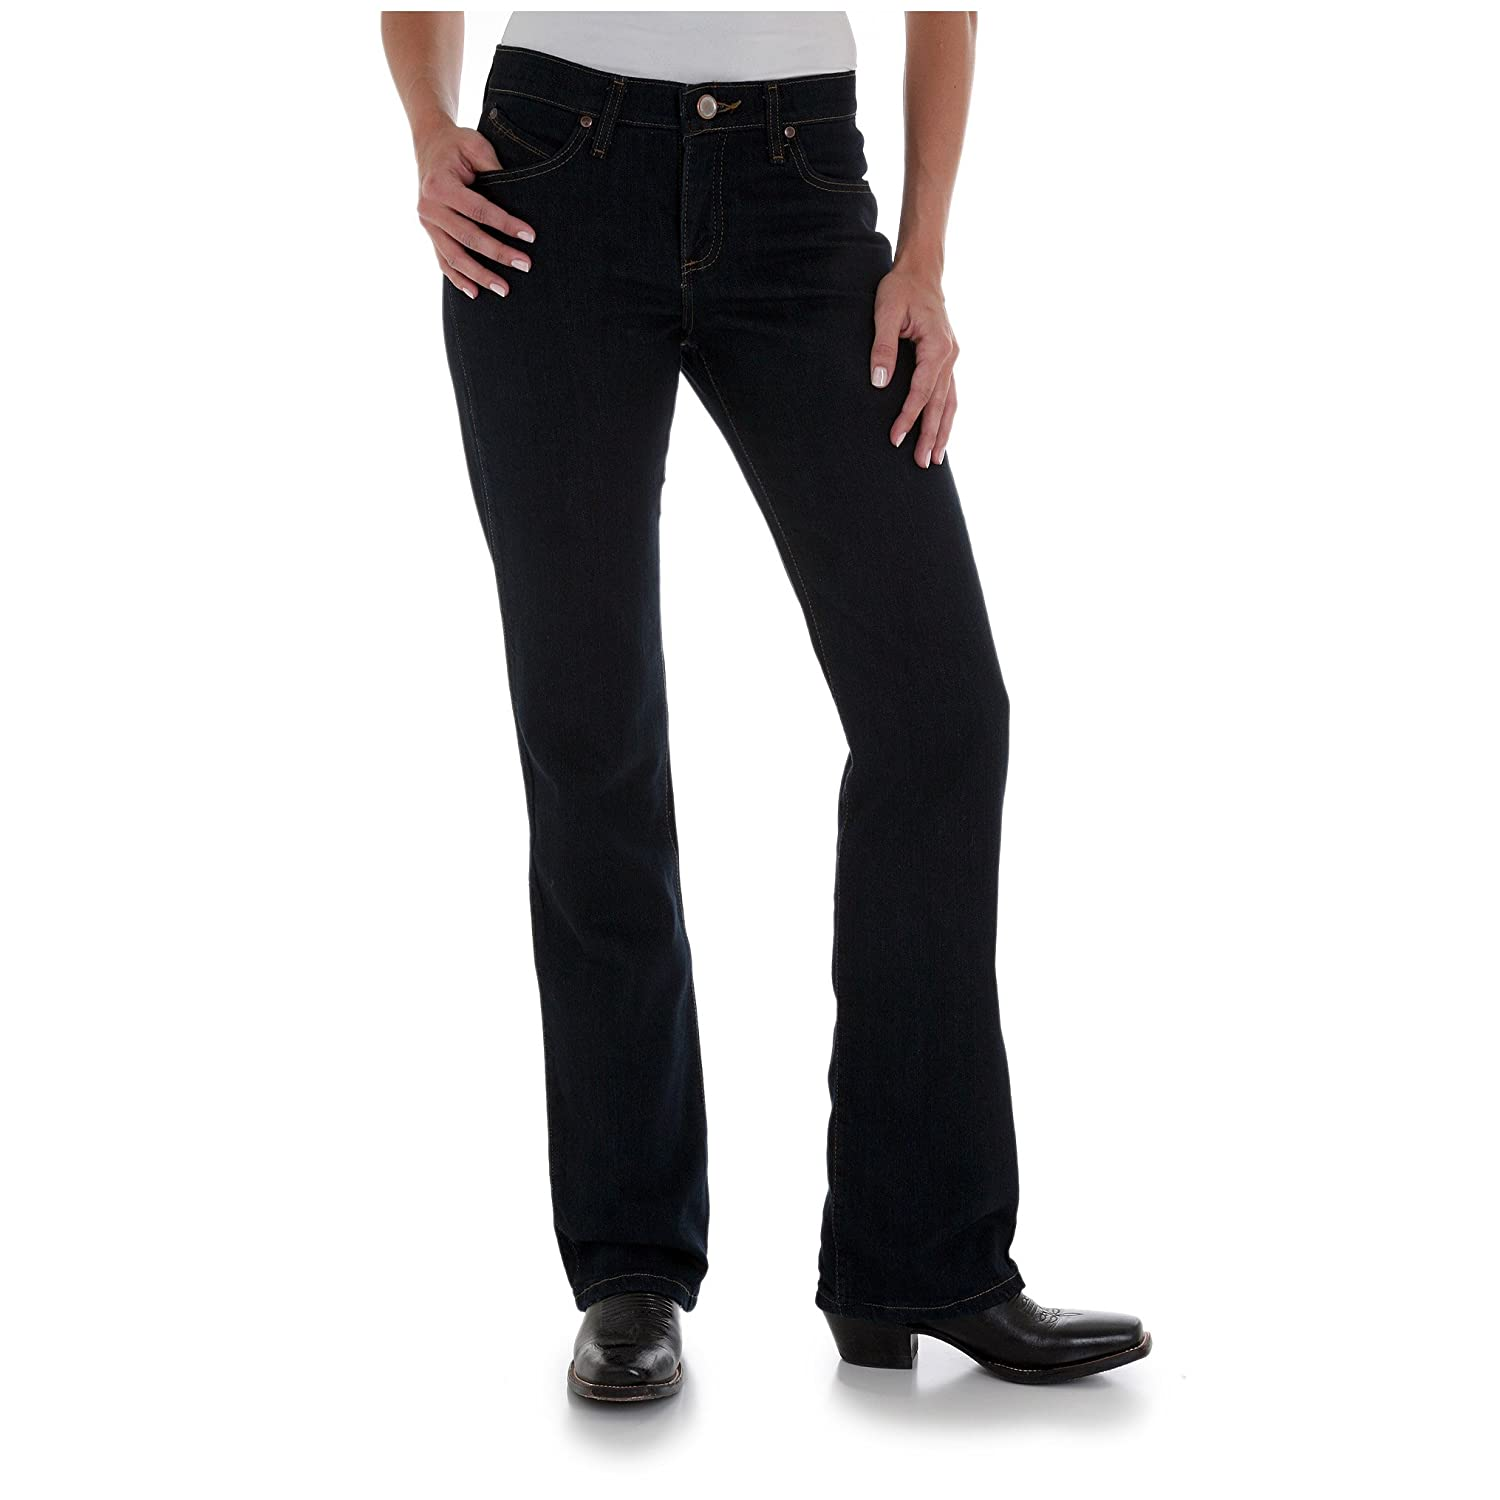 d0096e5d61a Amazon.com  Wrangler Women s Cowgirl Cut Ultimate Riding Jean Q-baby  Absolute Star 11x36L  Everything Else